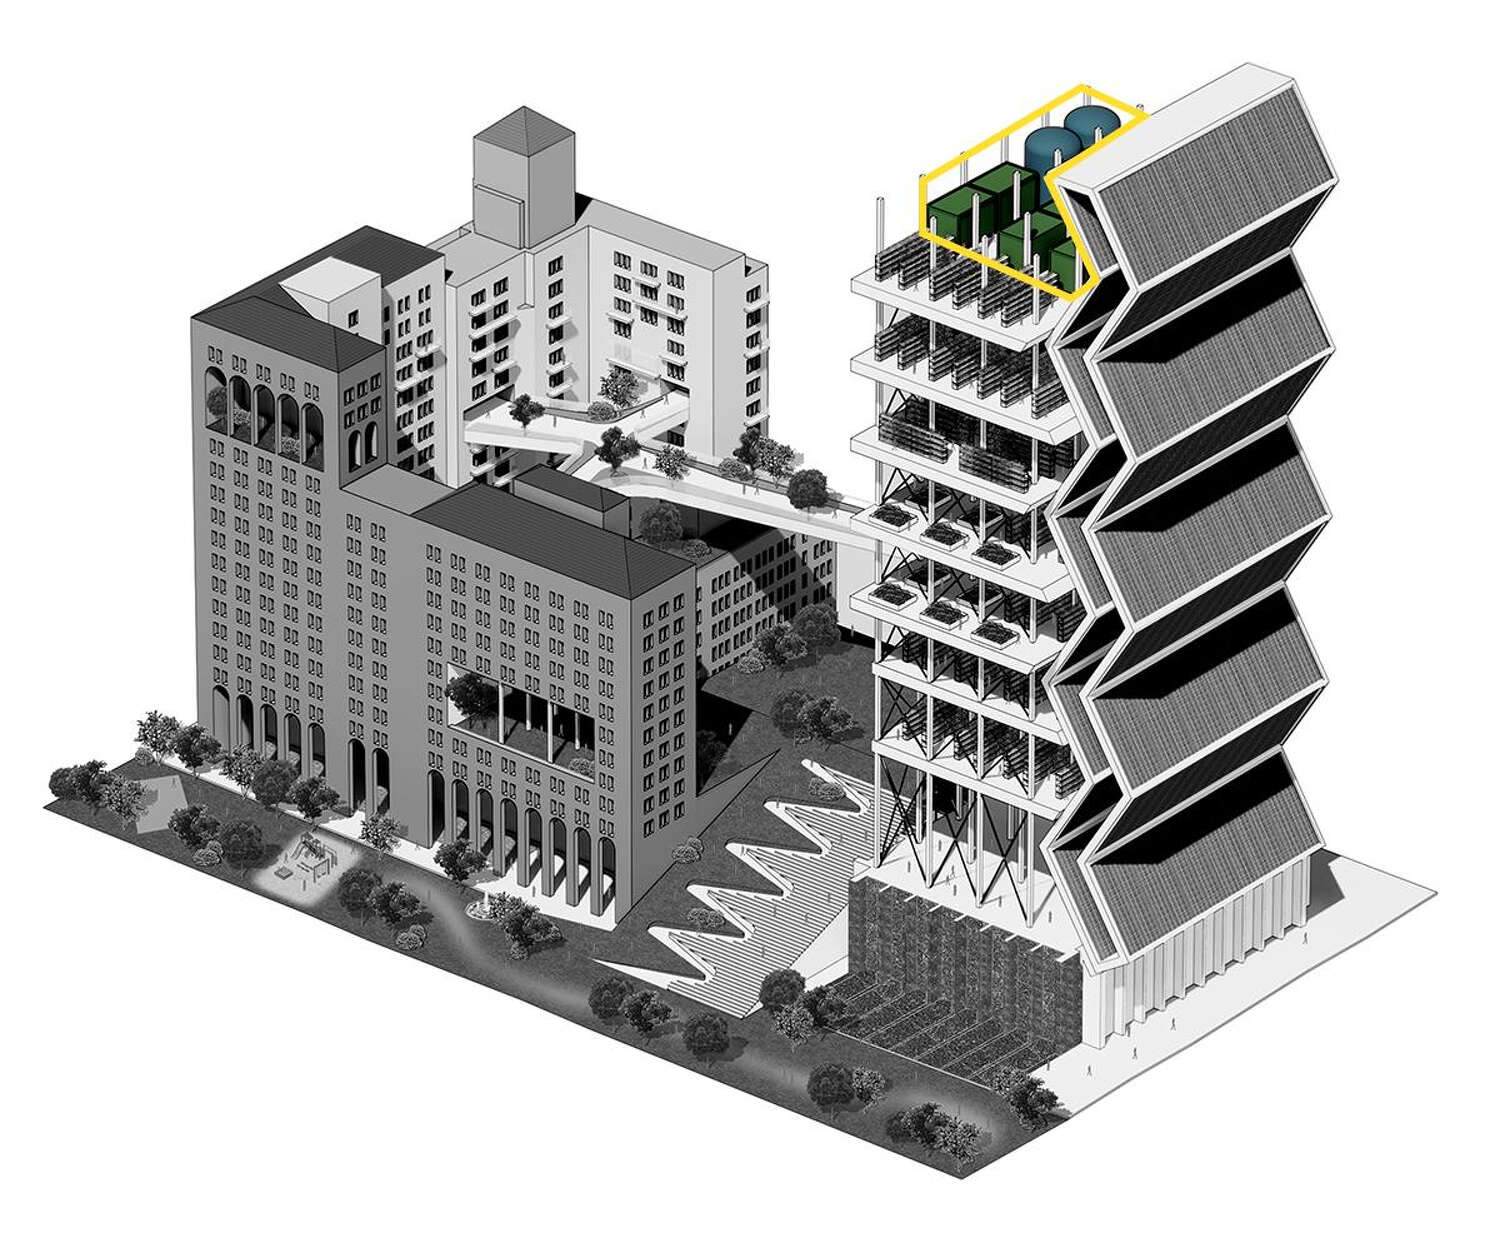 The cubic and circular shapes on the very top of the building in the front of the rendering is highlighted.